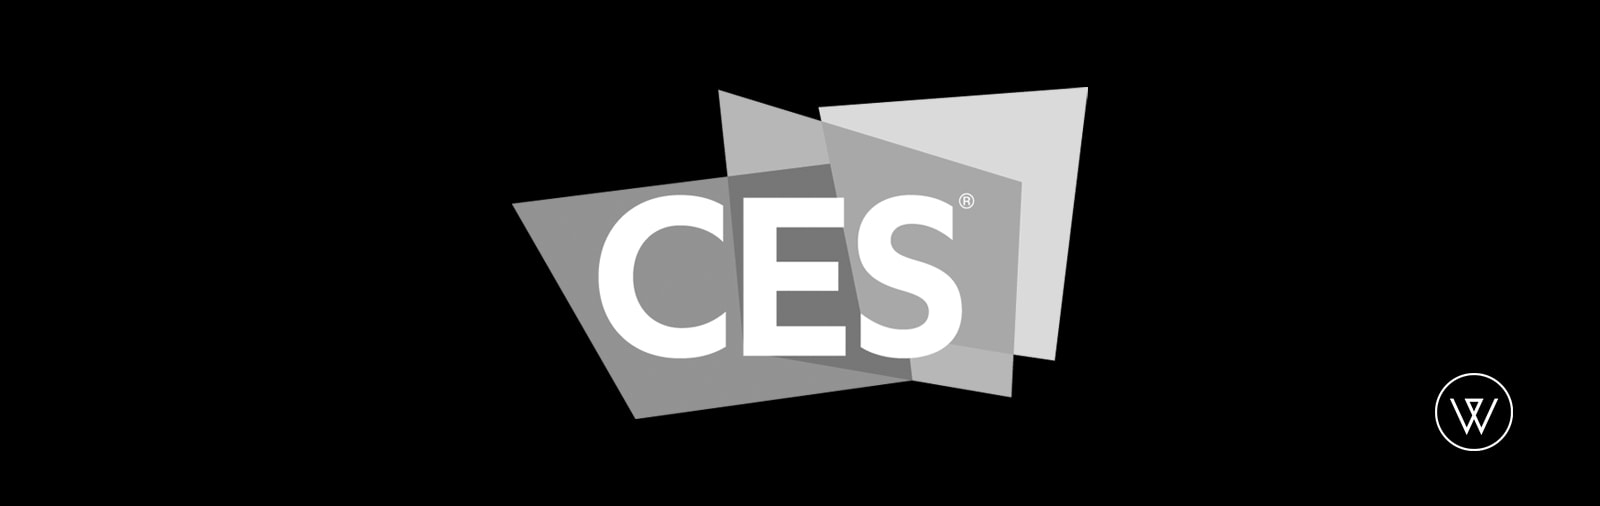 Nos experts au CES 2019 à Las Vegas !